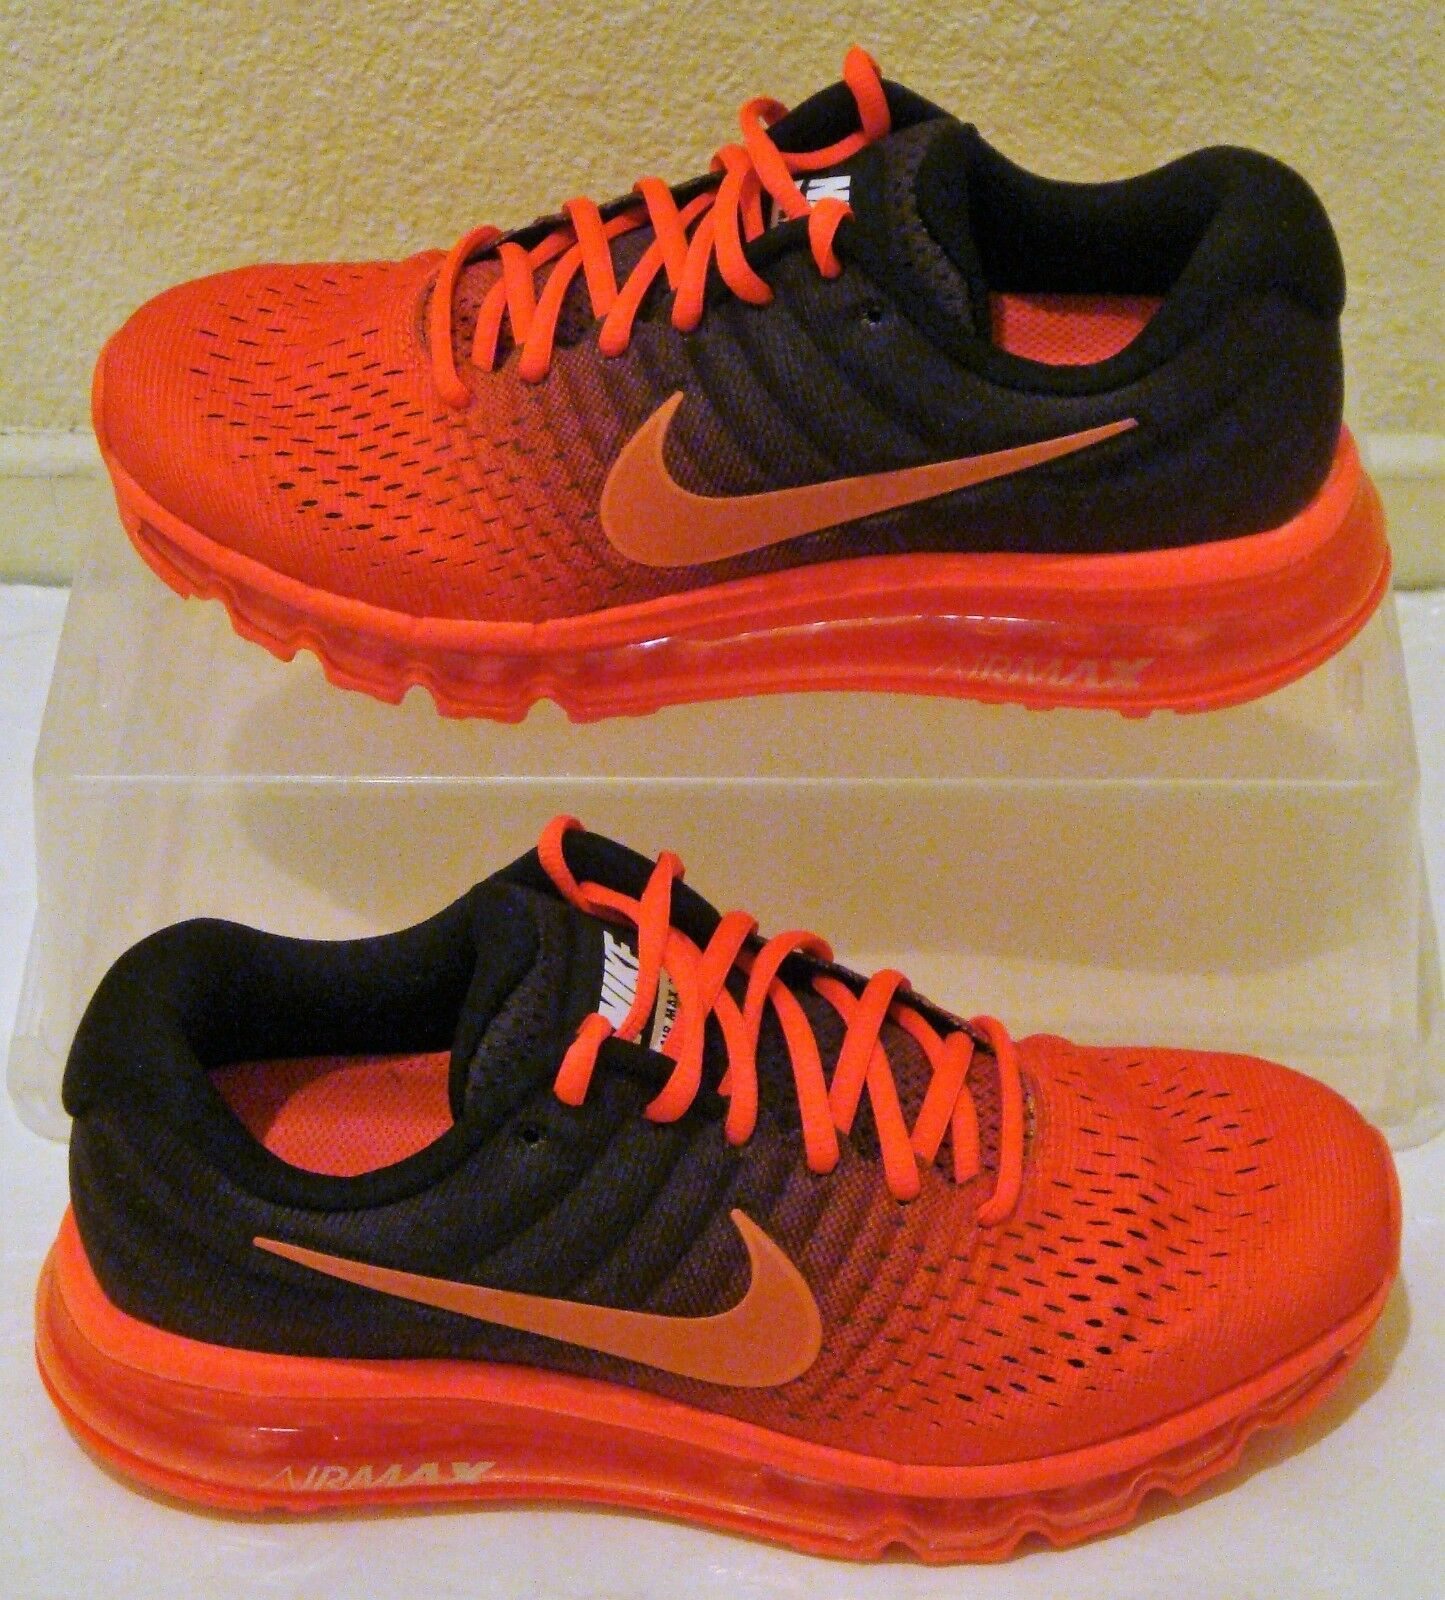 New Nike Air Max 2017 Crimson Black Mens US Size 12 Red